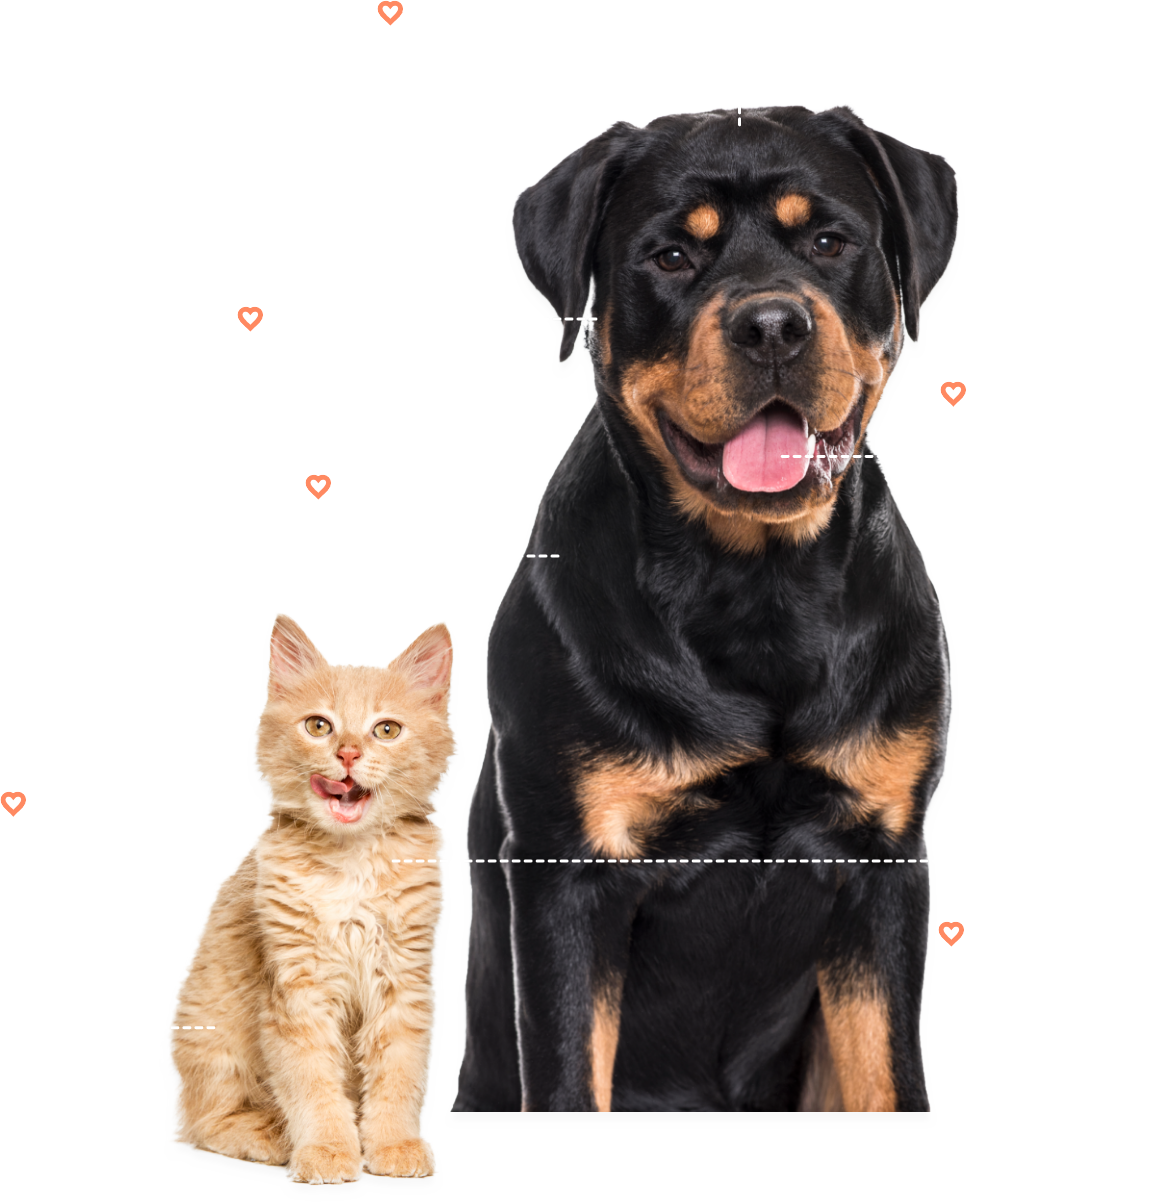 dog-and-cat-info